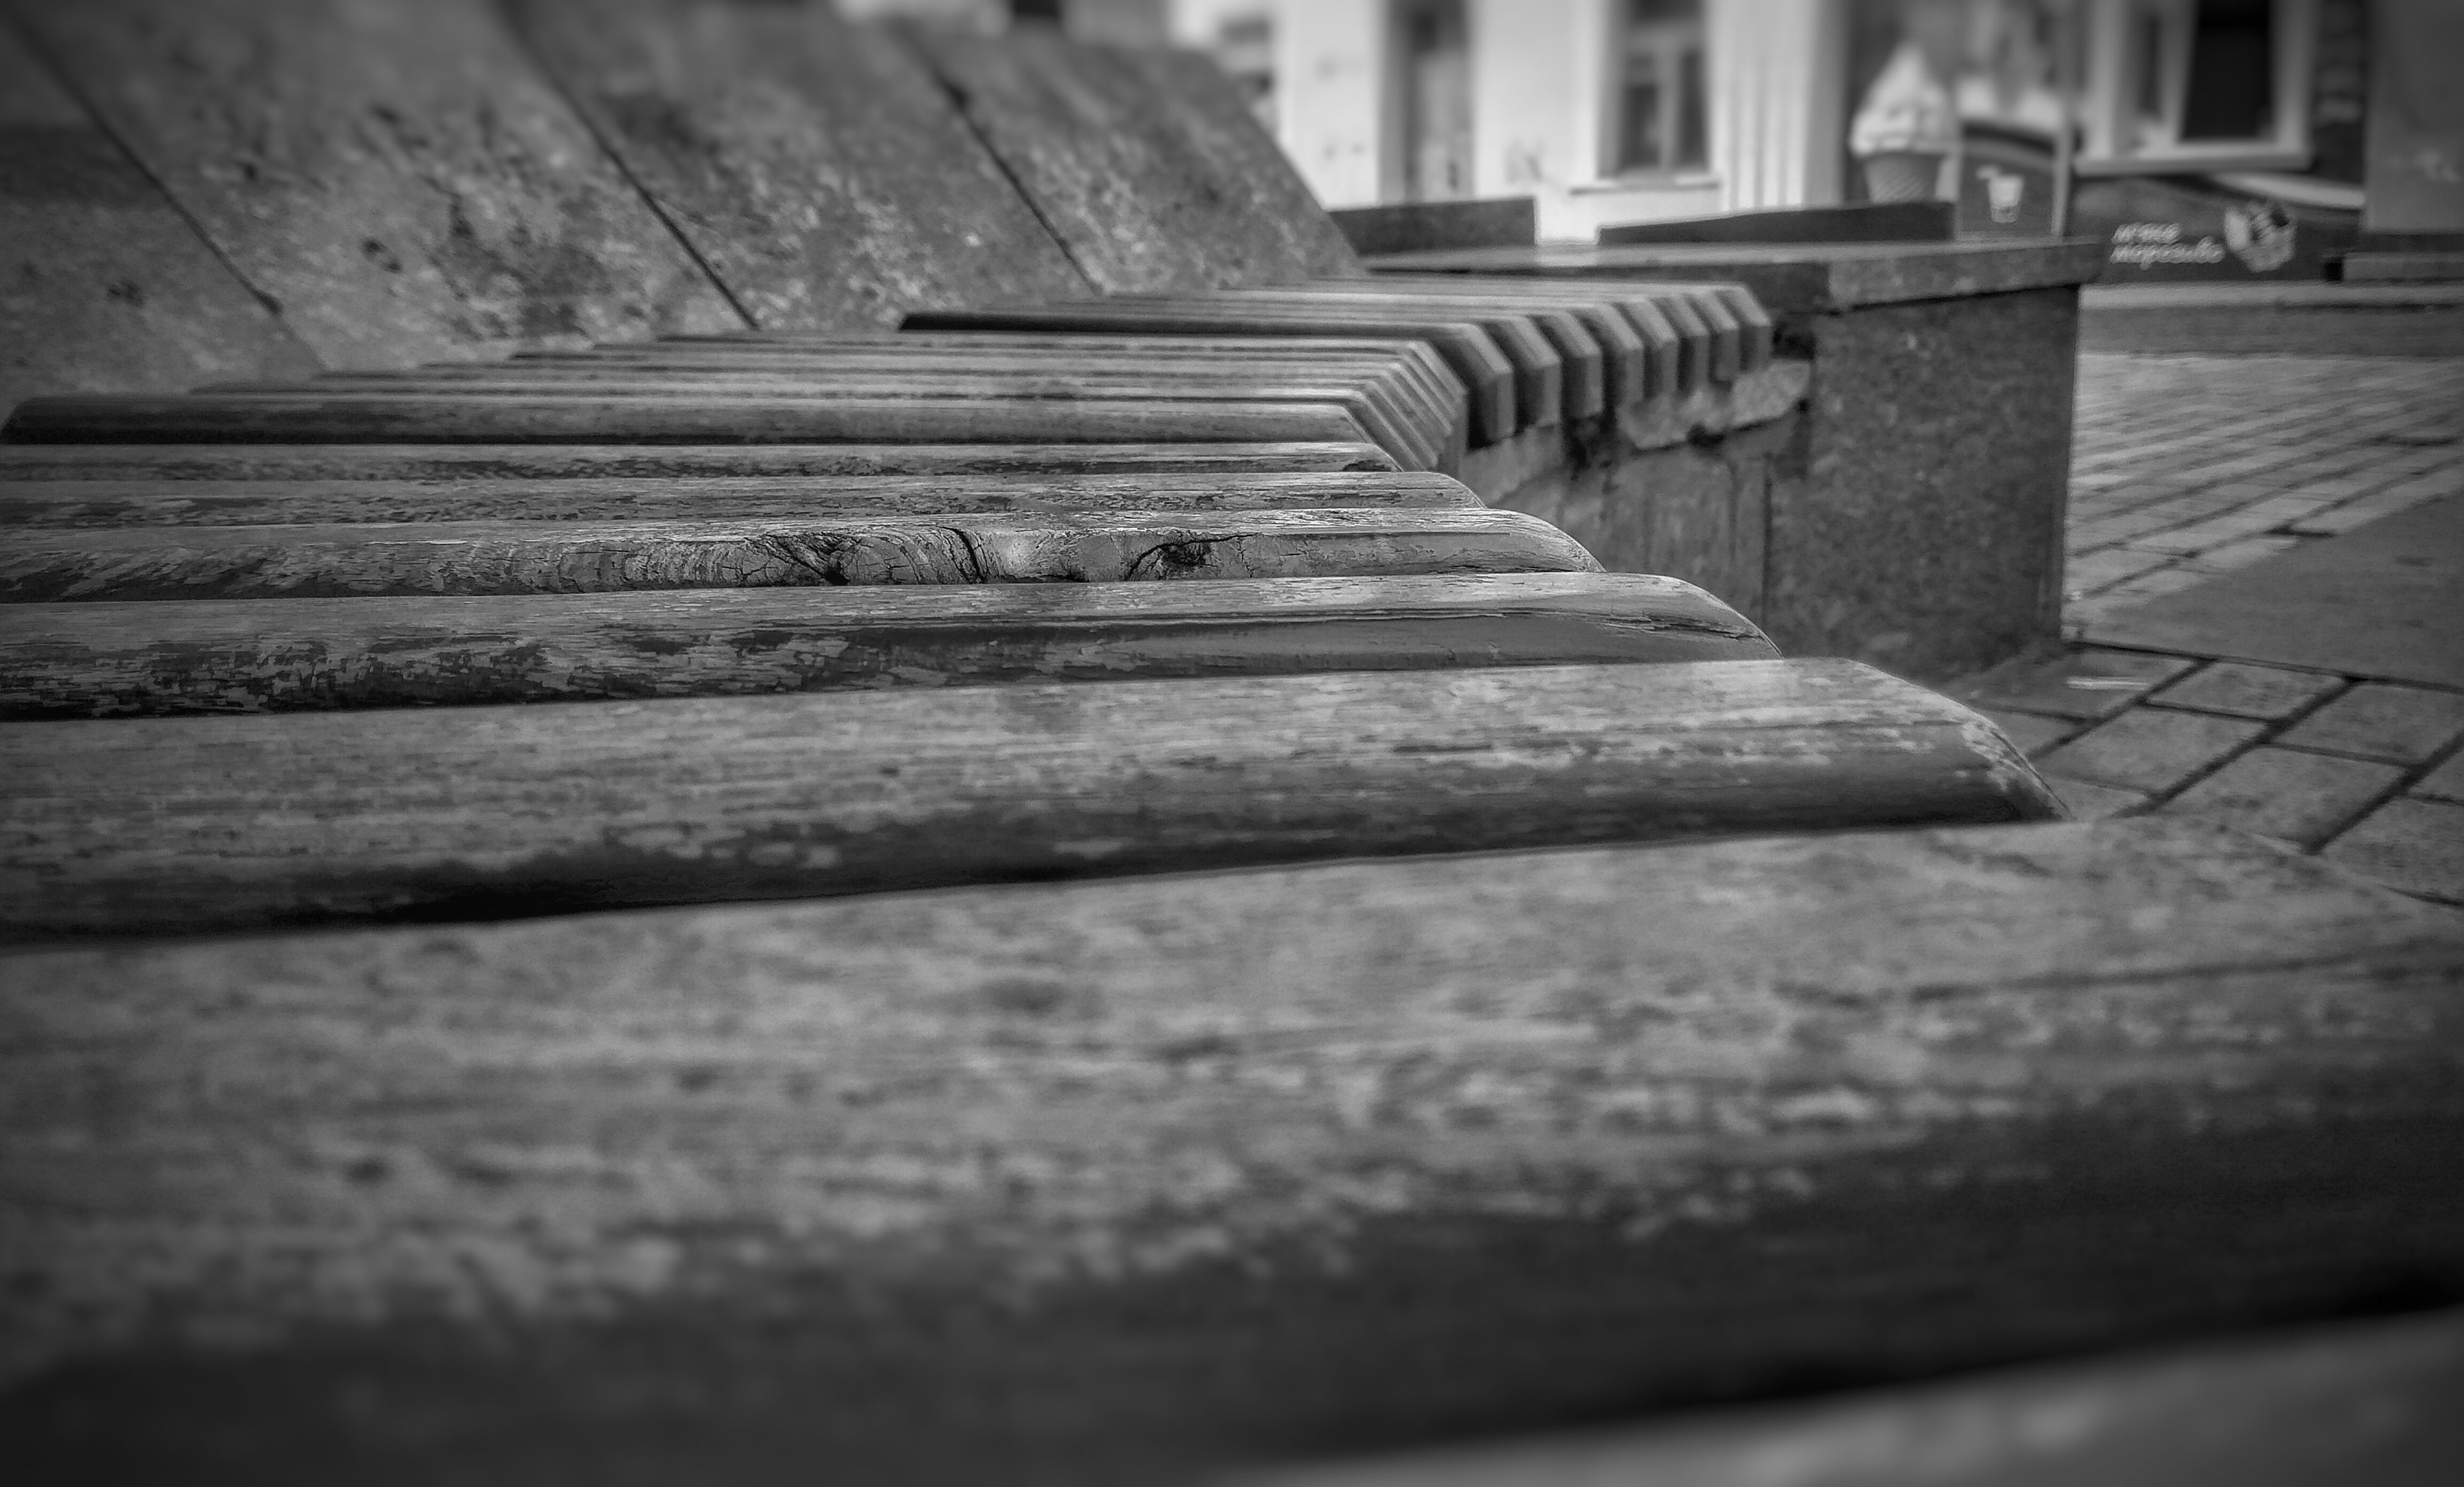 wood - material, wooden, selective focus, surface level, close-up, focus on foreground, wood, plank, bench, steps, built structure, boardwalk, day, outdoors, textured, no people, sunlight, railing, empty, table